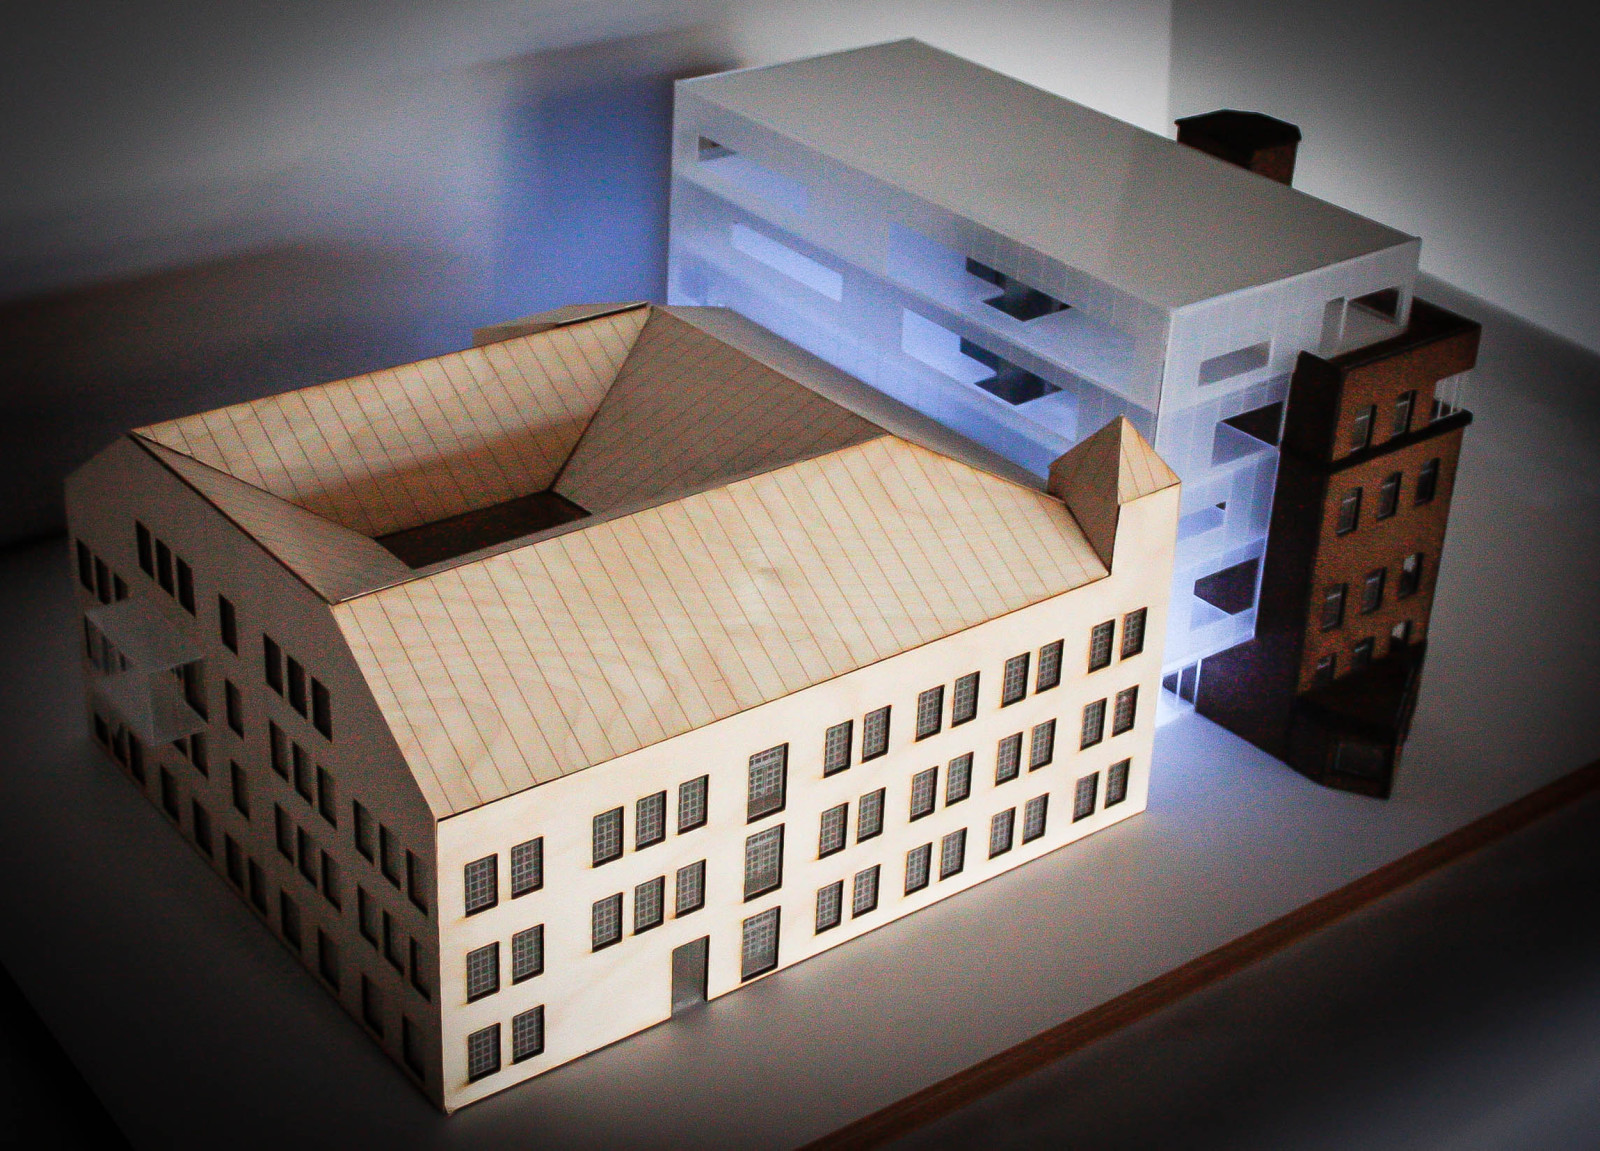 Model. Two existing volumes are linked by a glazed building.